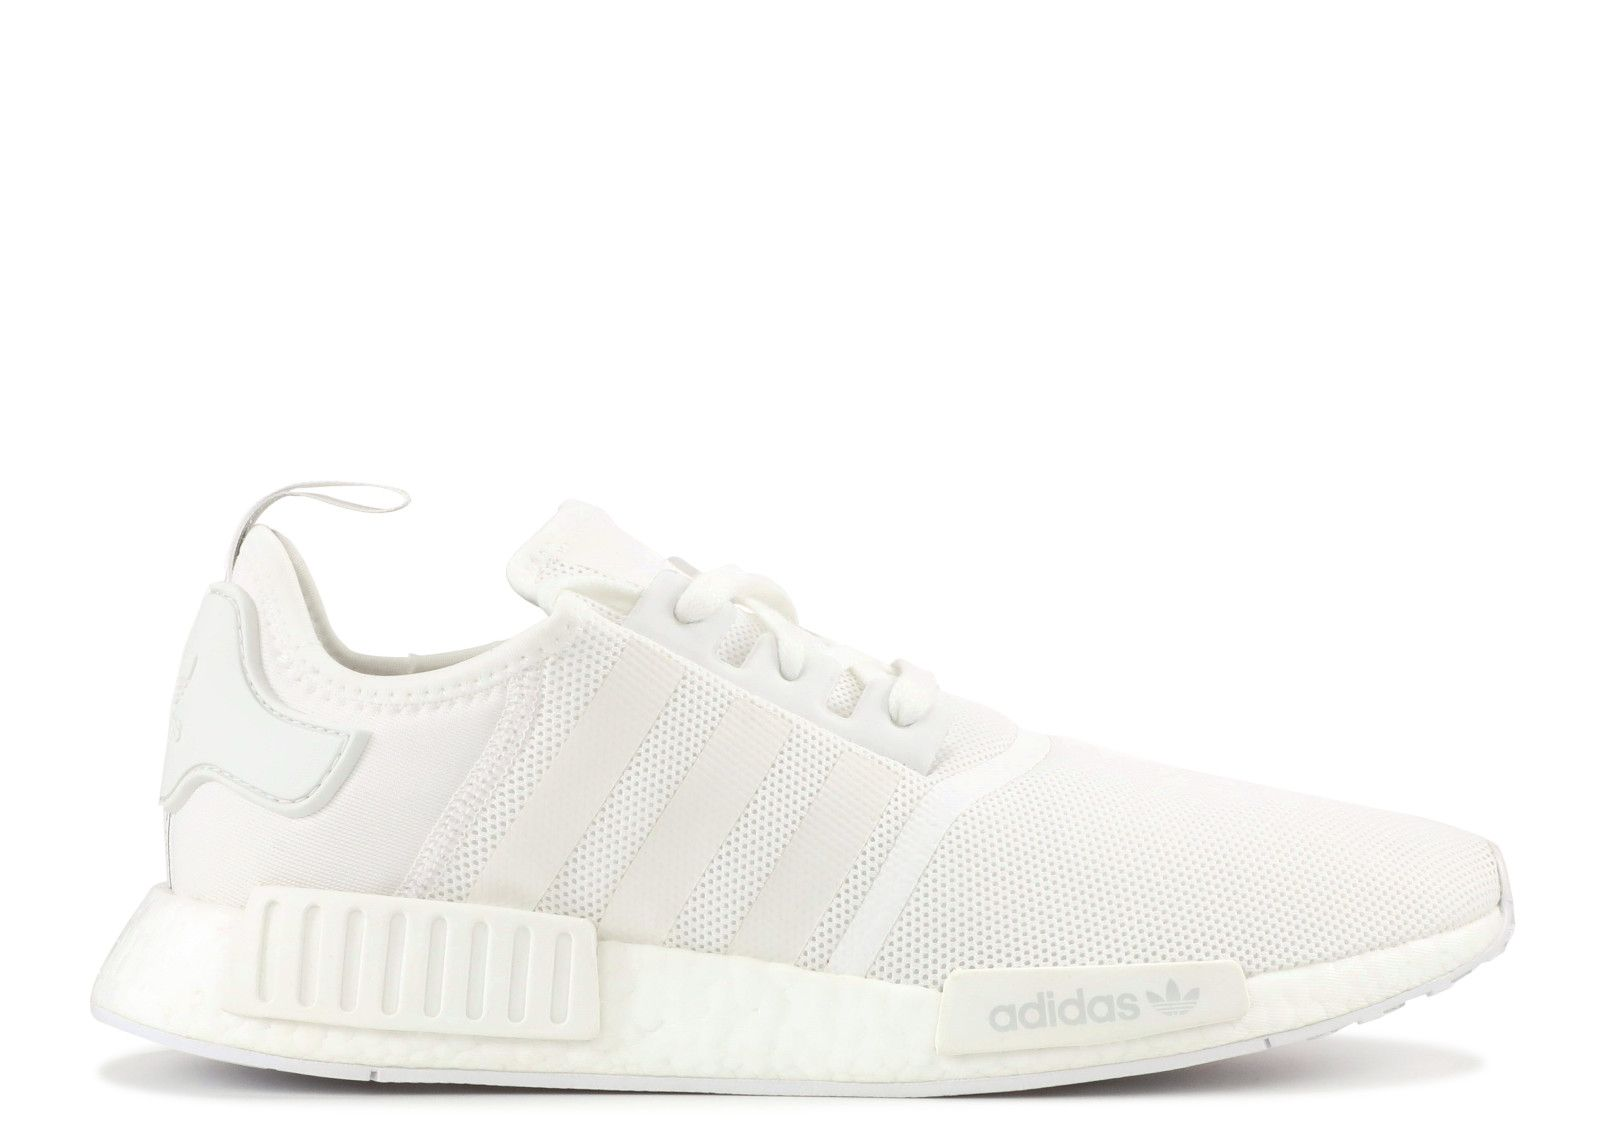 online retailer 5f3c7 1356f Really Cheap NMD R1 white black cq2411 2018 Online